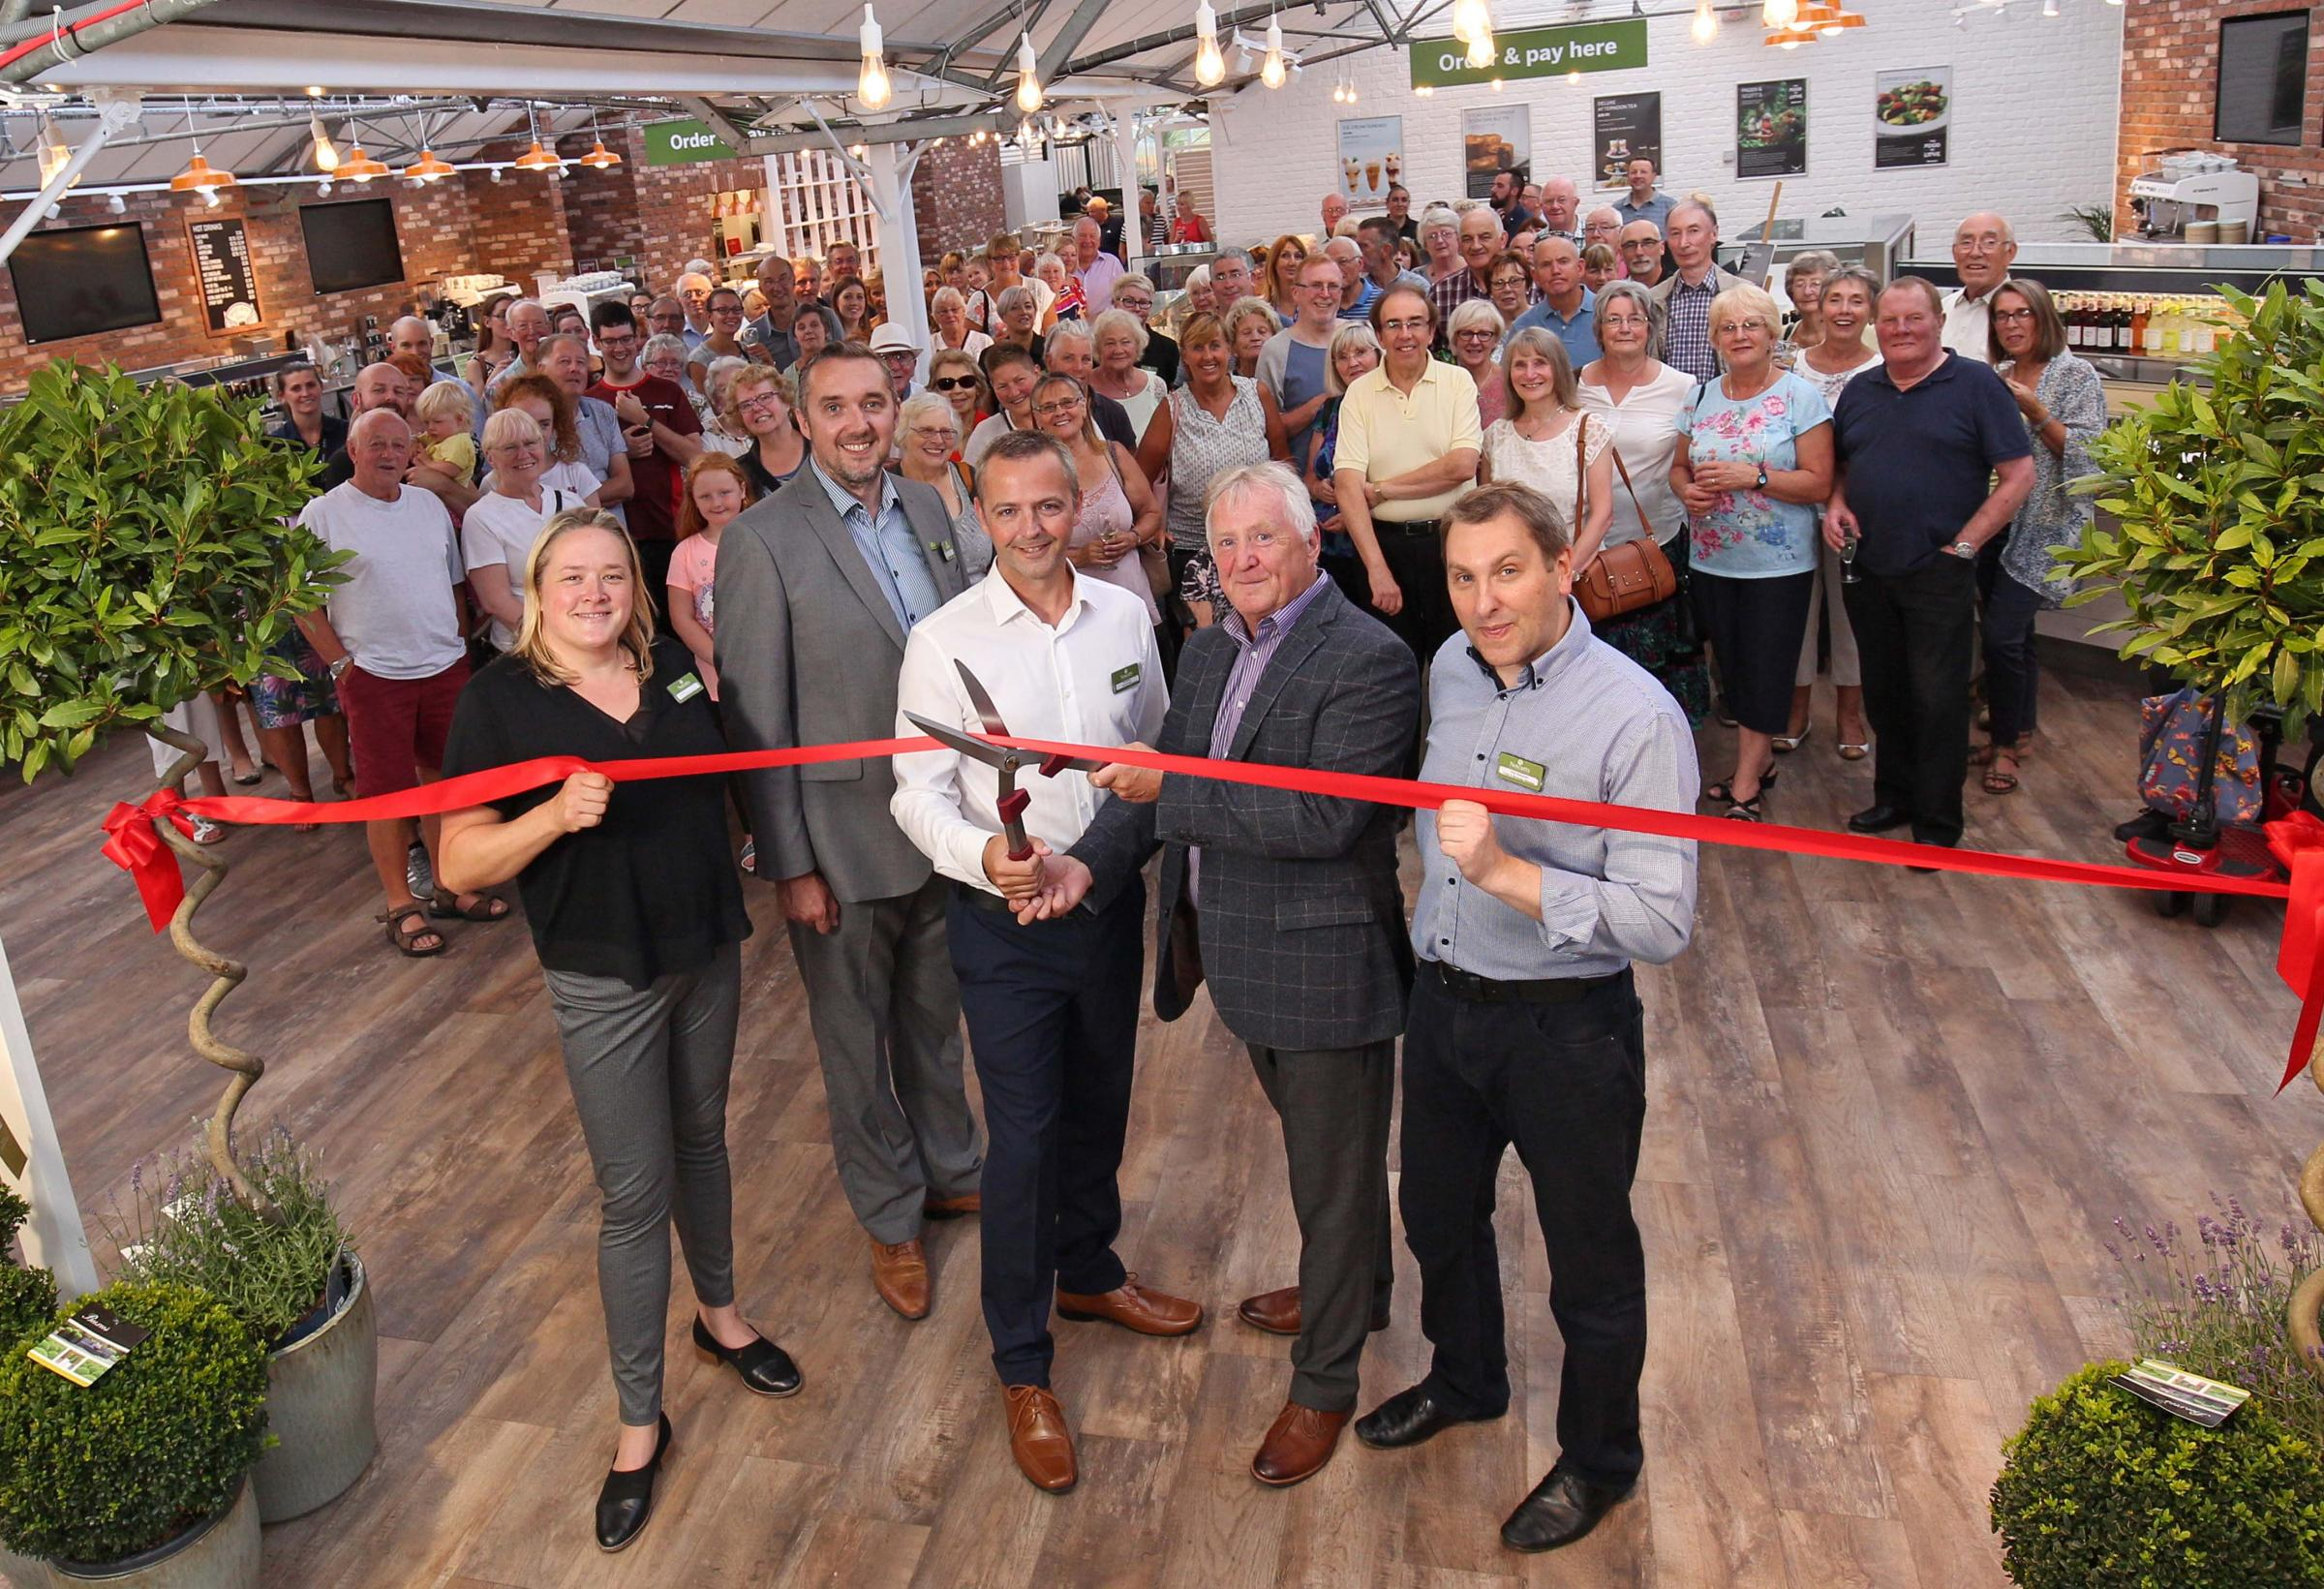 Notcutts Rivendell Garden Centre has unveiled a new look following a major refurbishment.